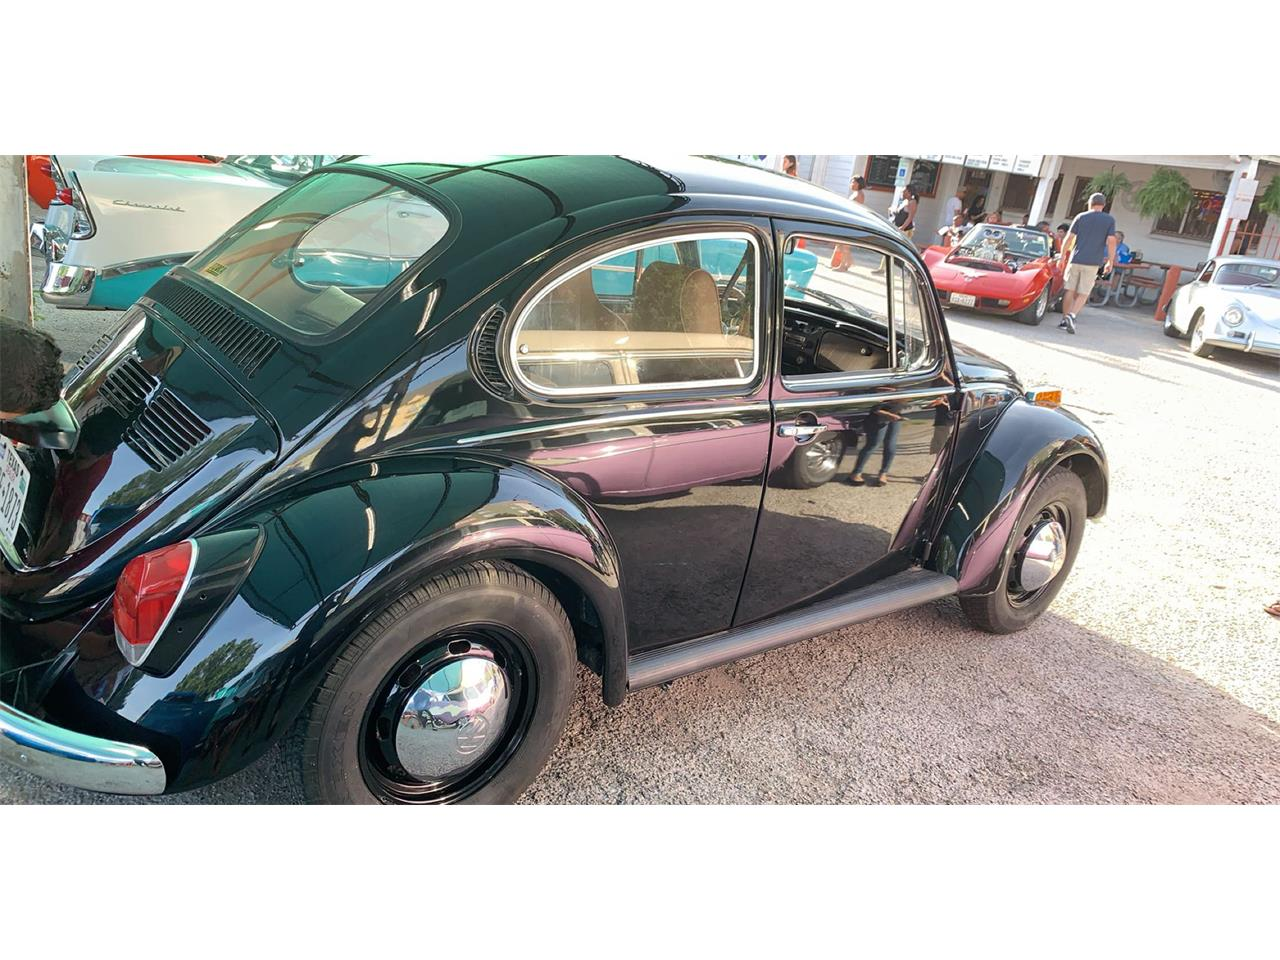 Large Picture of 1972 Volkswagen Beetle located in Texas Offered by a Private Seller - QOBX